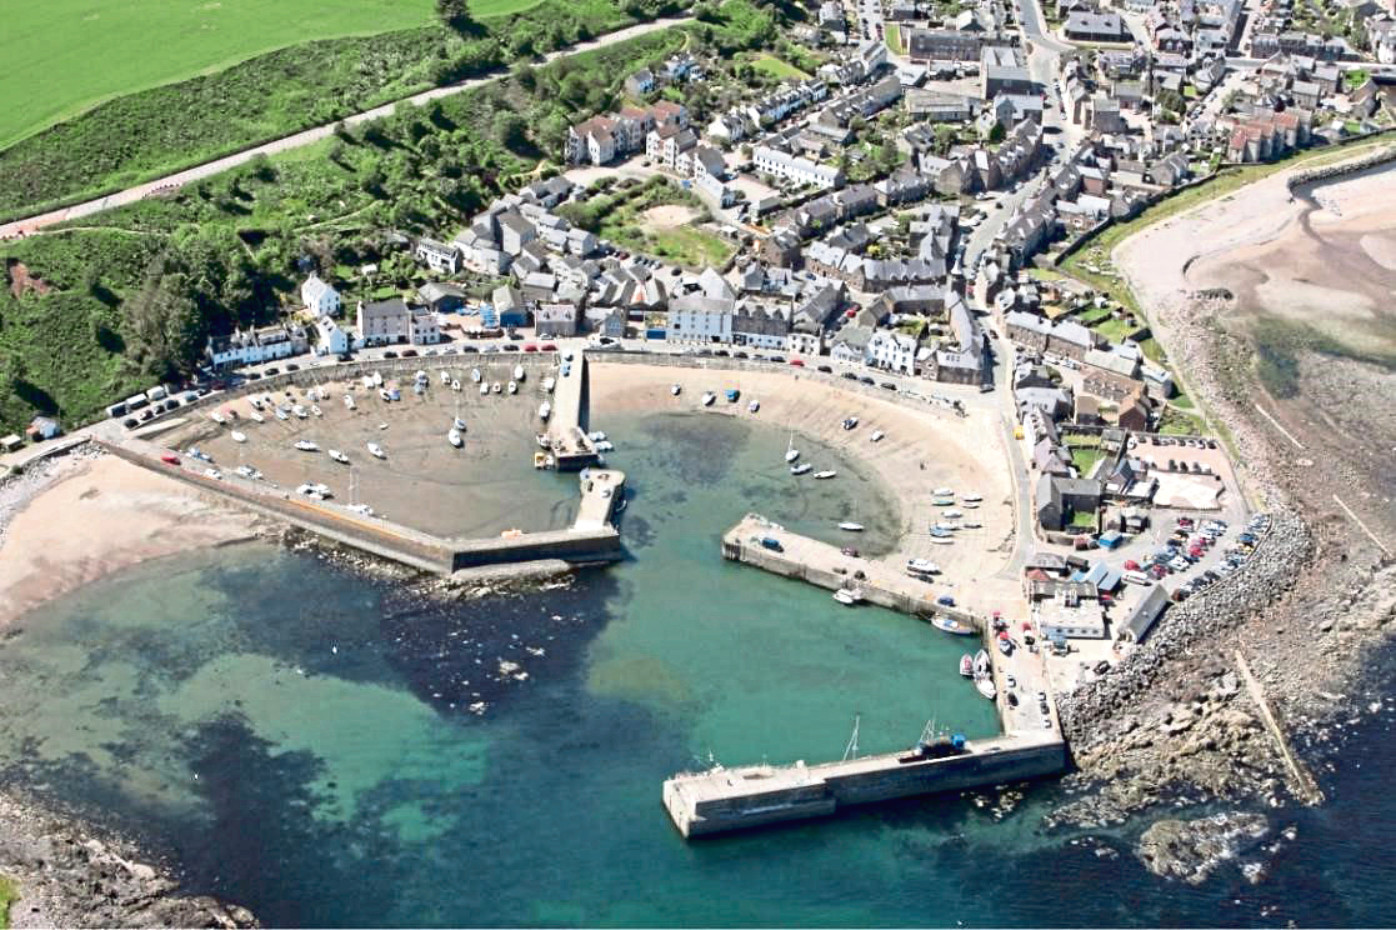 Stonehaven Harbour is one of three harbours Aberdeenshire Council is looking to improve in a project